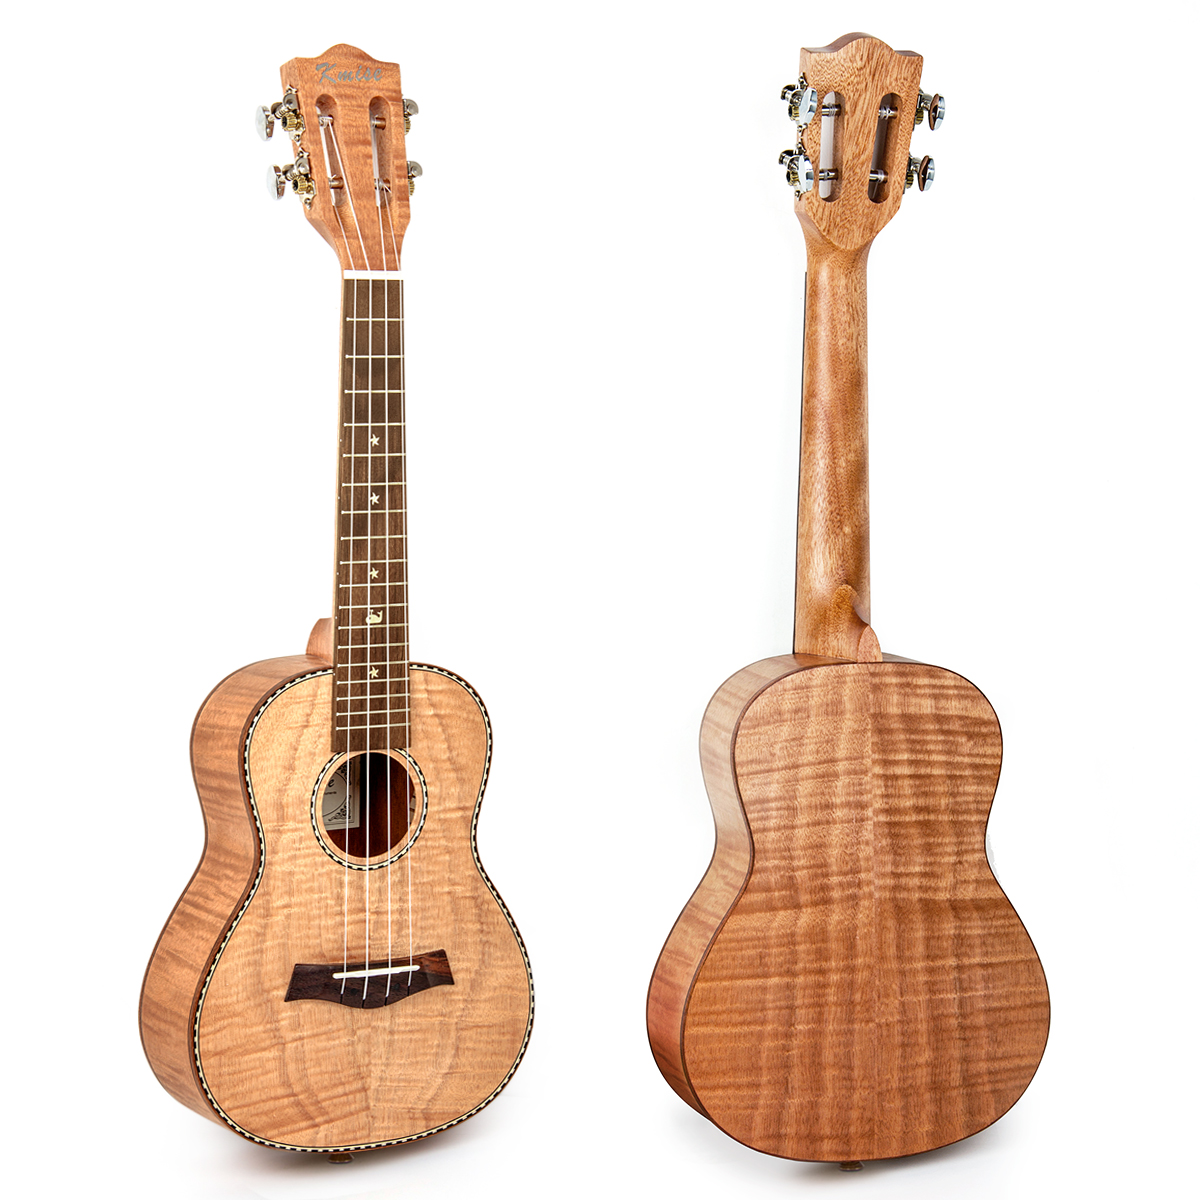 Dean Guitars Ukulele Travel Uke: Kmise Tenor Travel Ukulele 26 Inch 18 Frets Thin